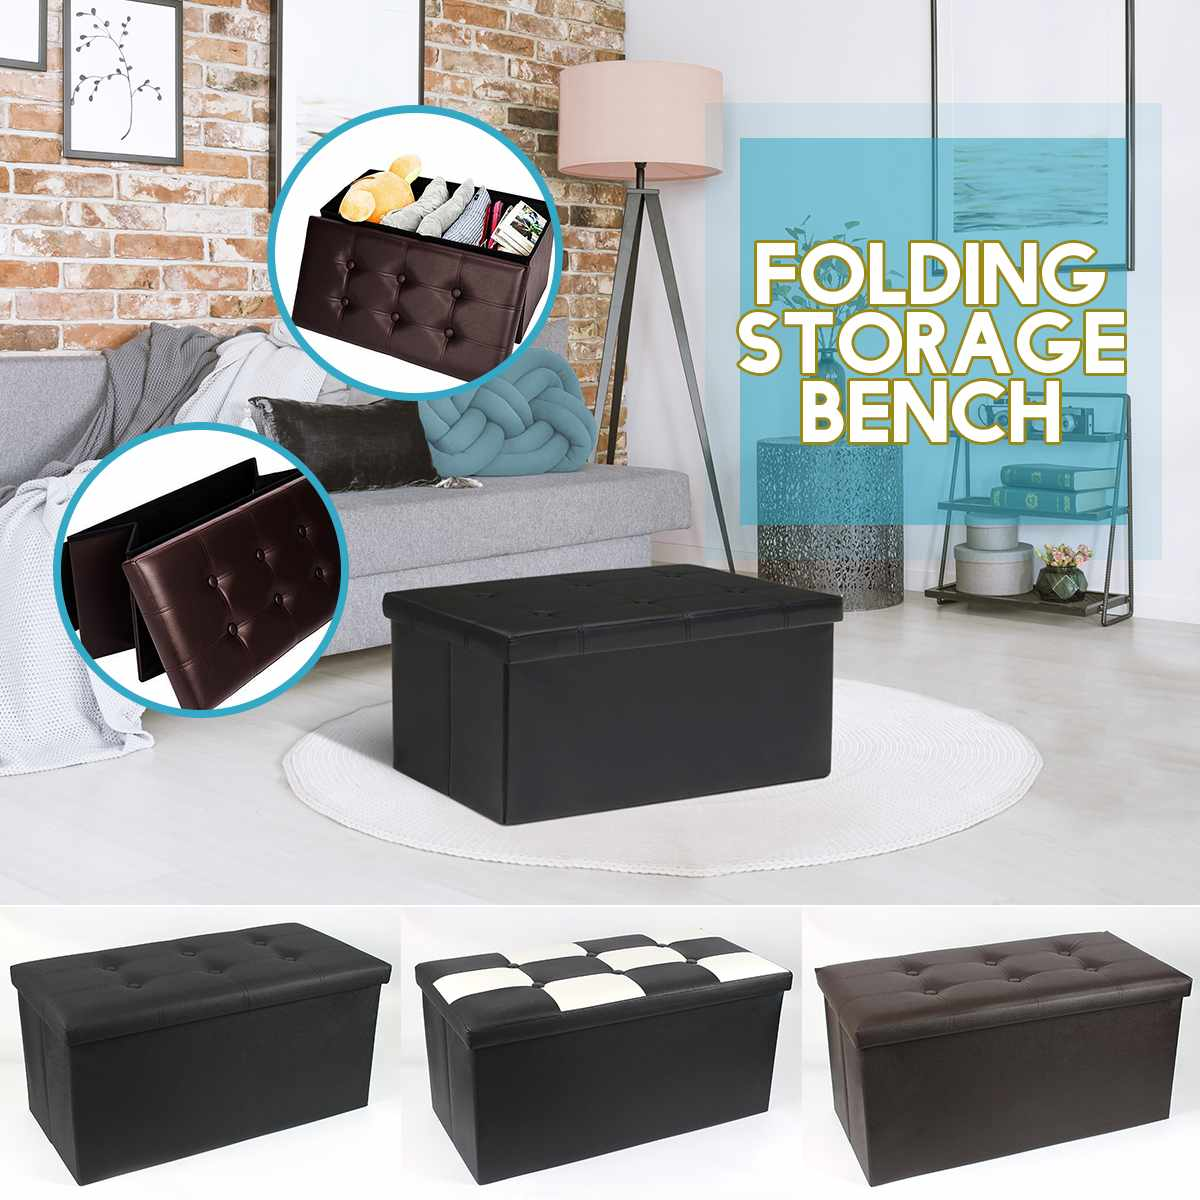 76x38x38cm Folding Cuboid Ottoman Bench PU Leather Pouffe Storage Box Lounge Seat Footstools Brown White Black Grid Pattern Home